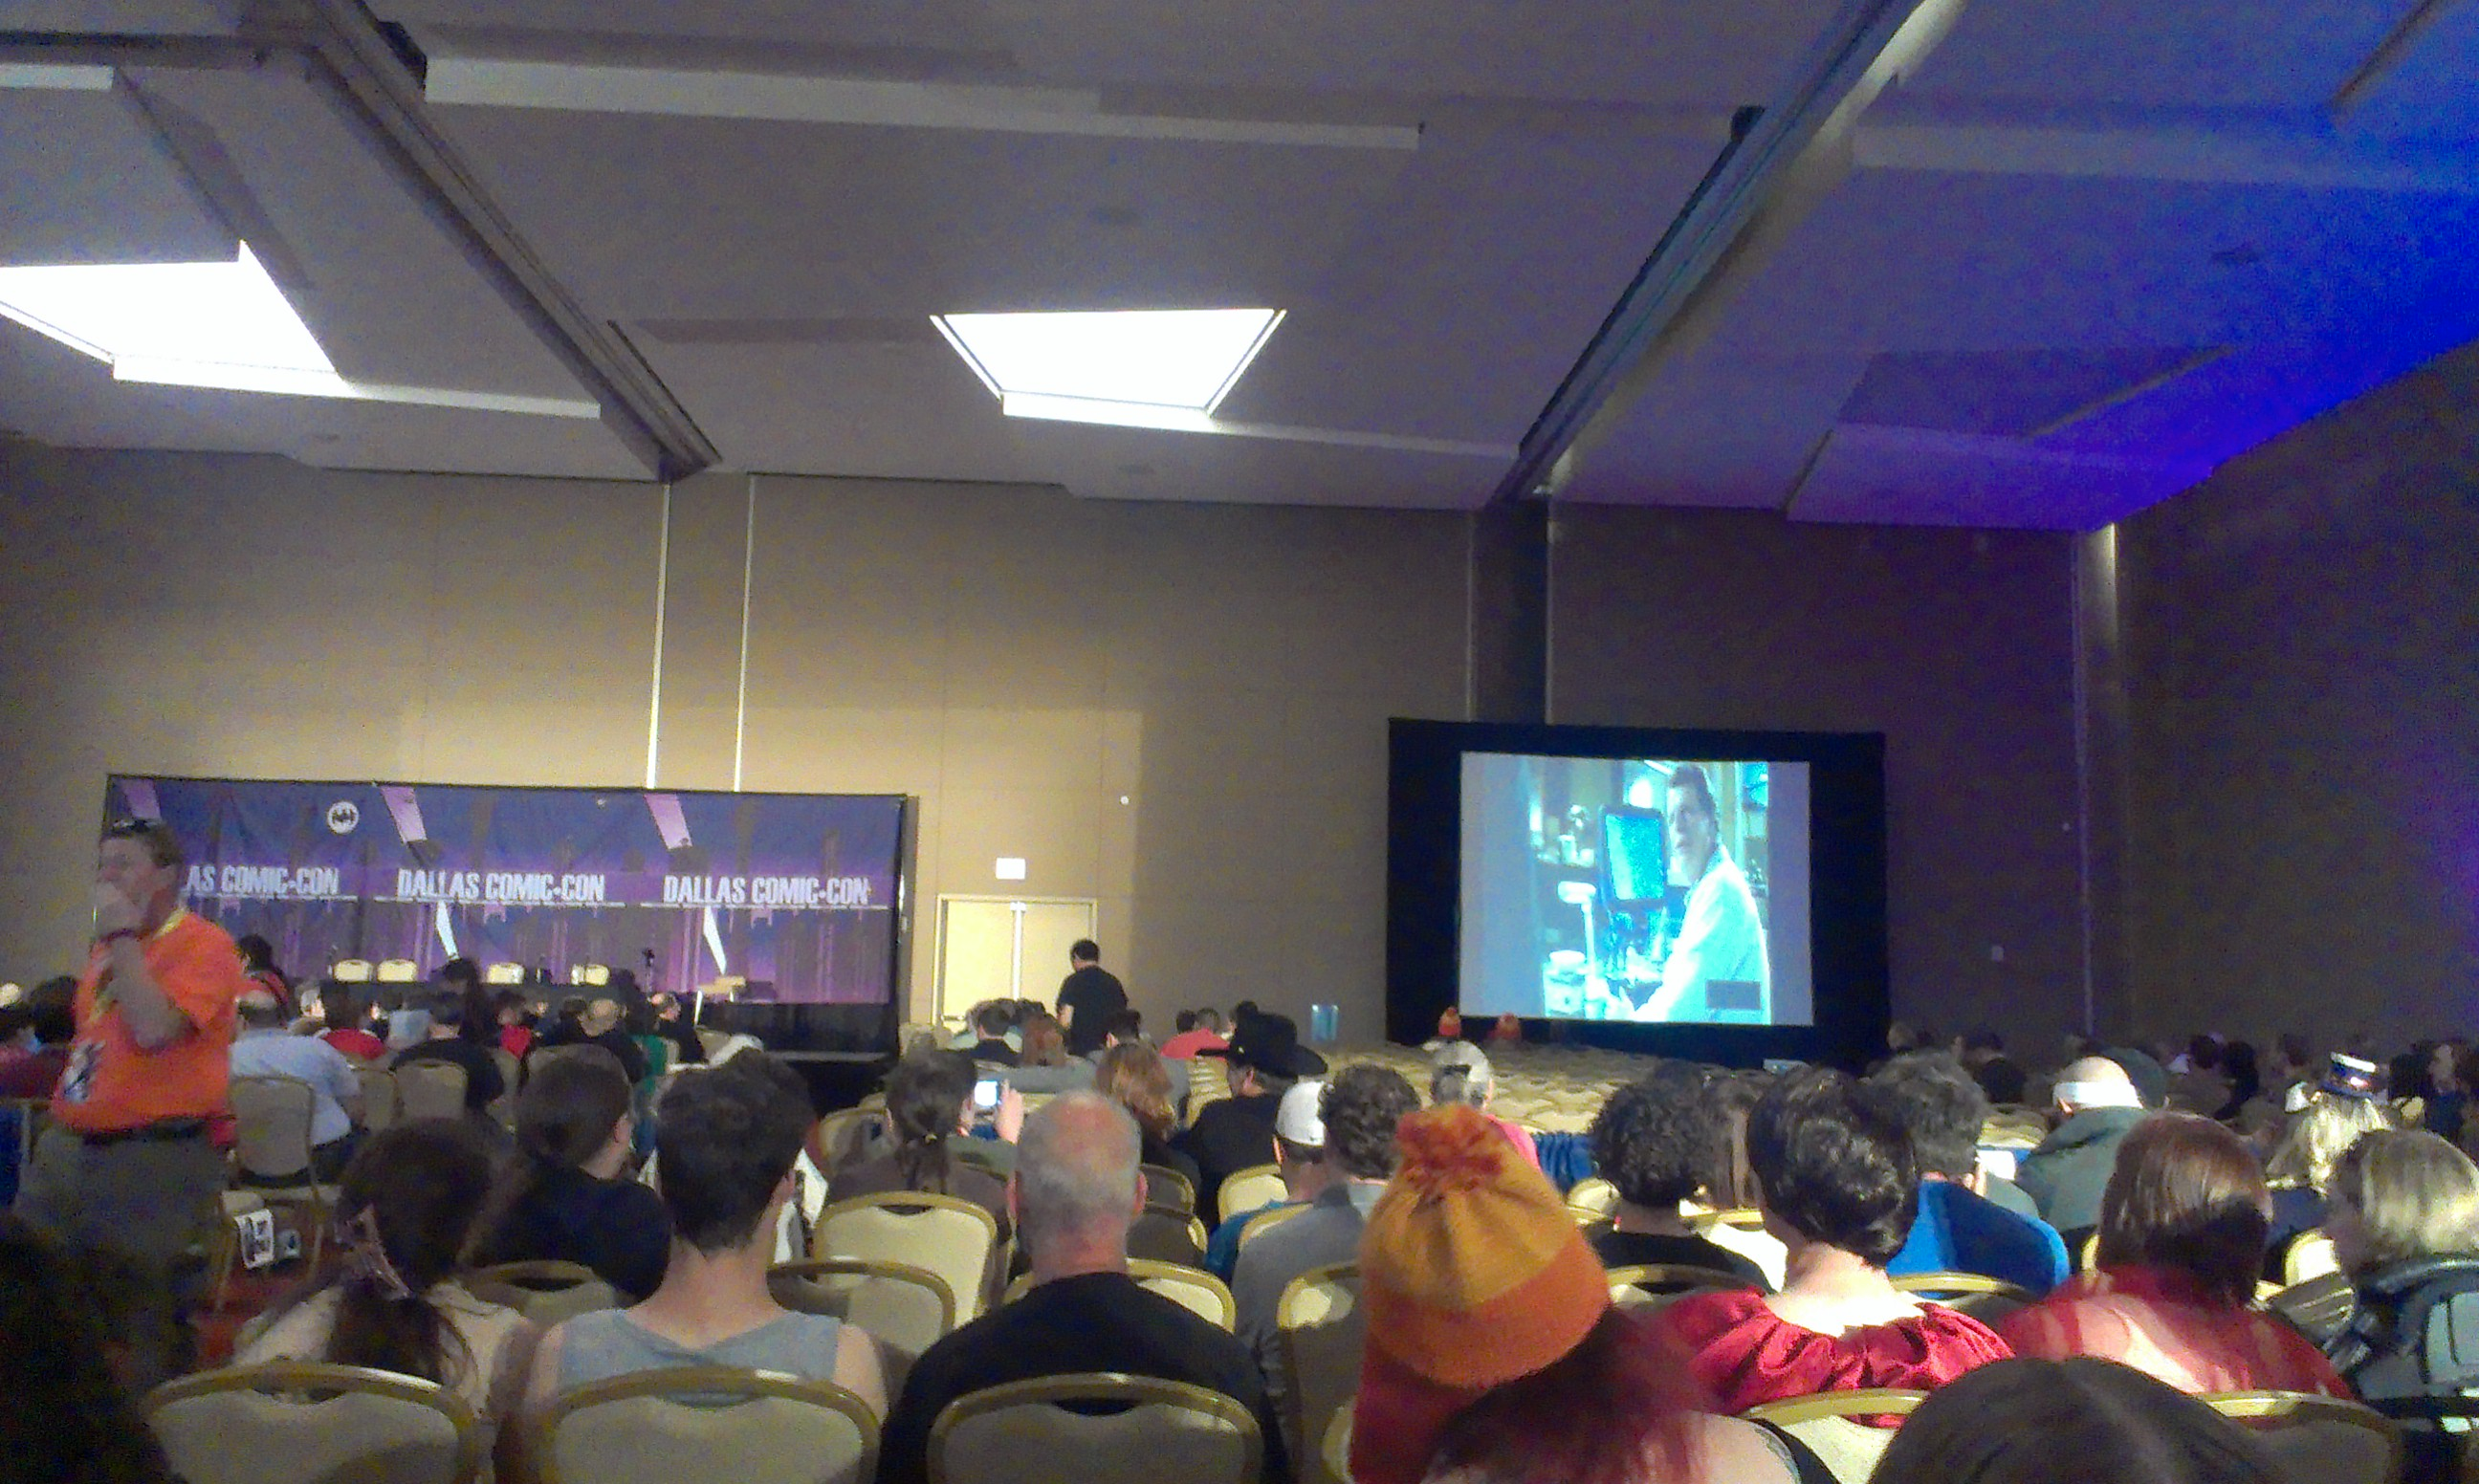 Getting ready for the Fringe panel. They showed a brief Fringe montage before it started.